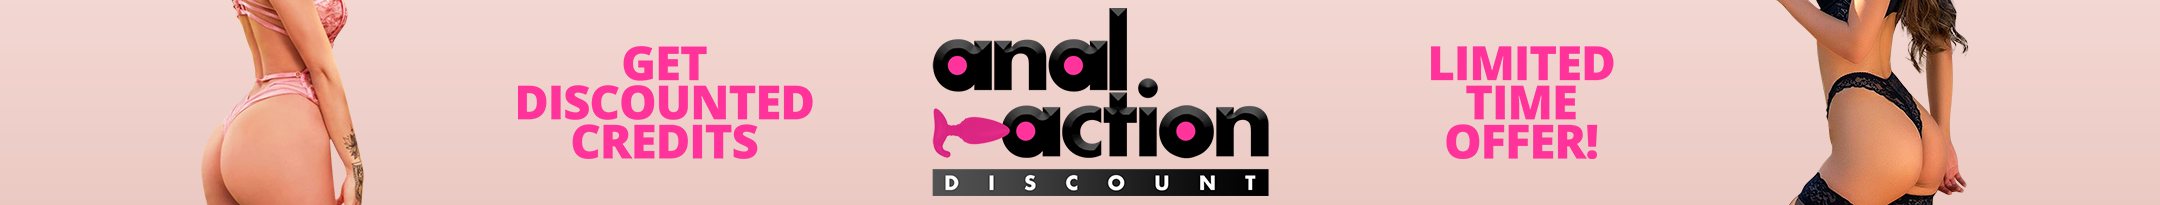 Anal Action Discount Promo